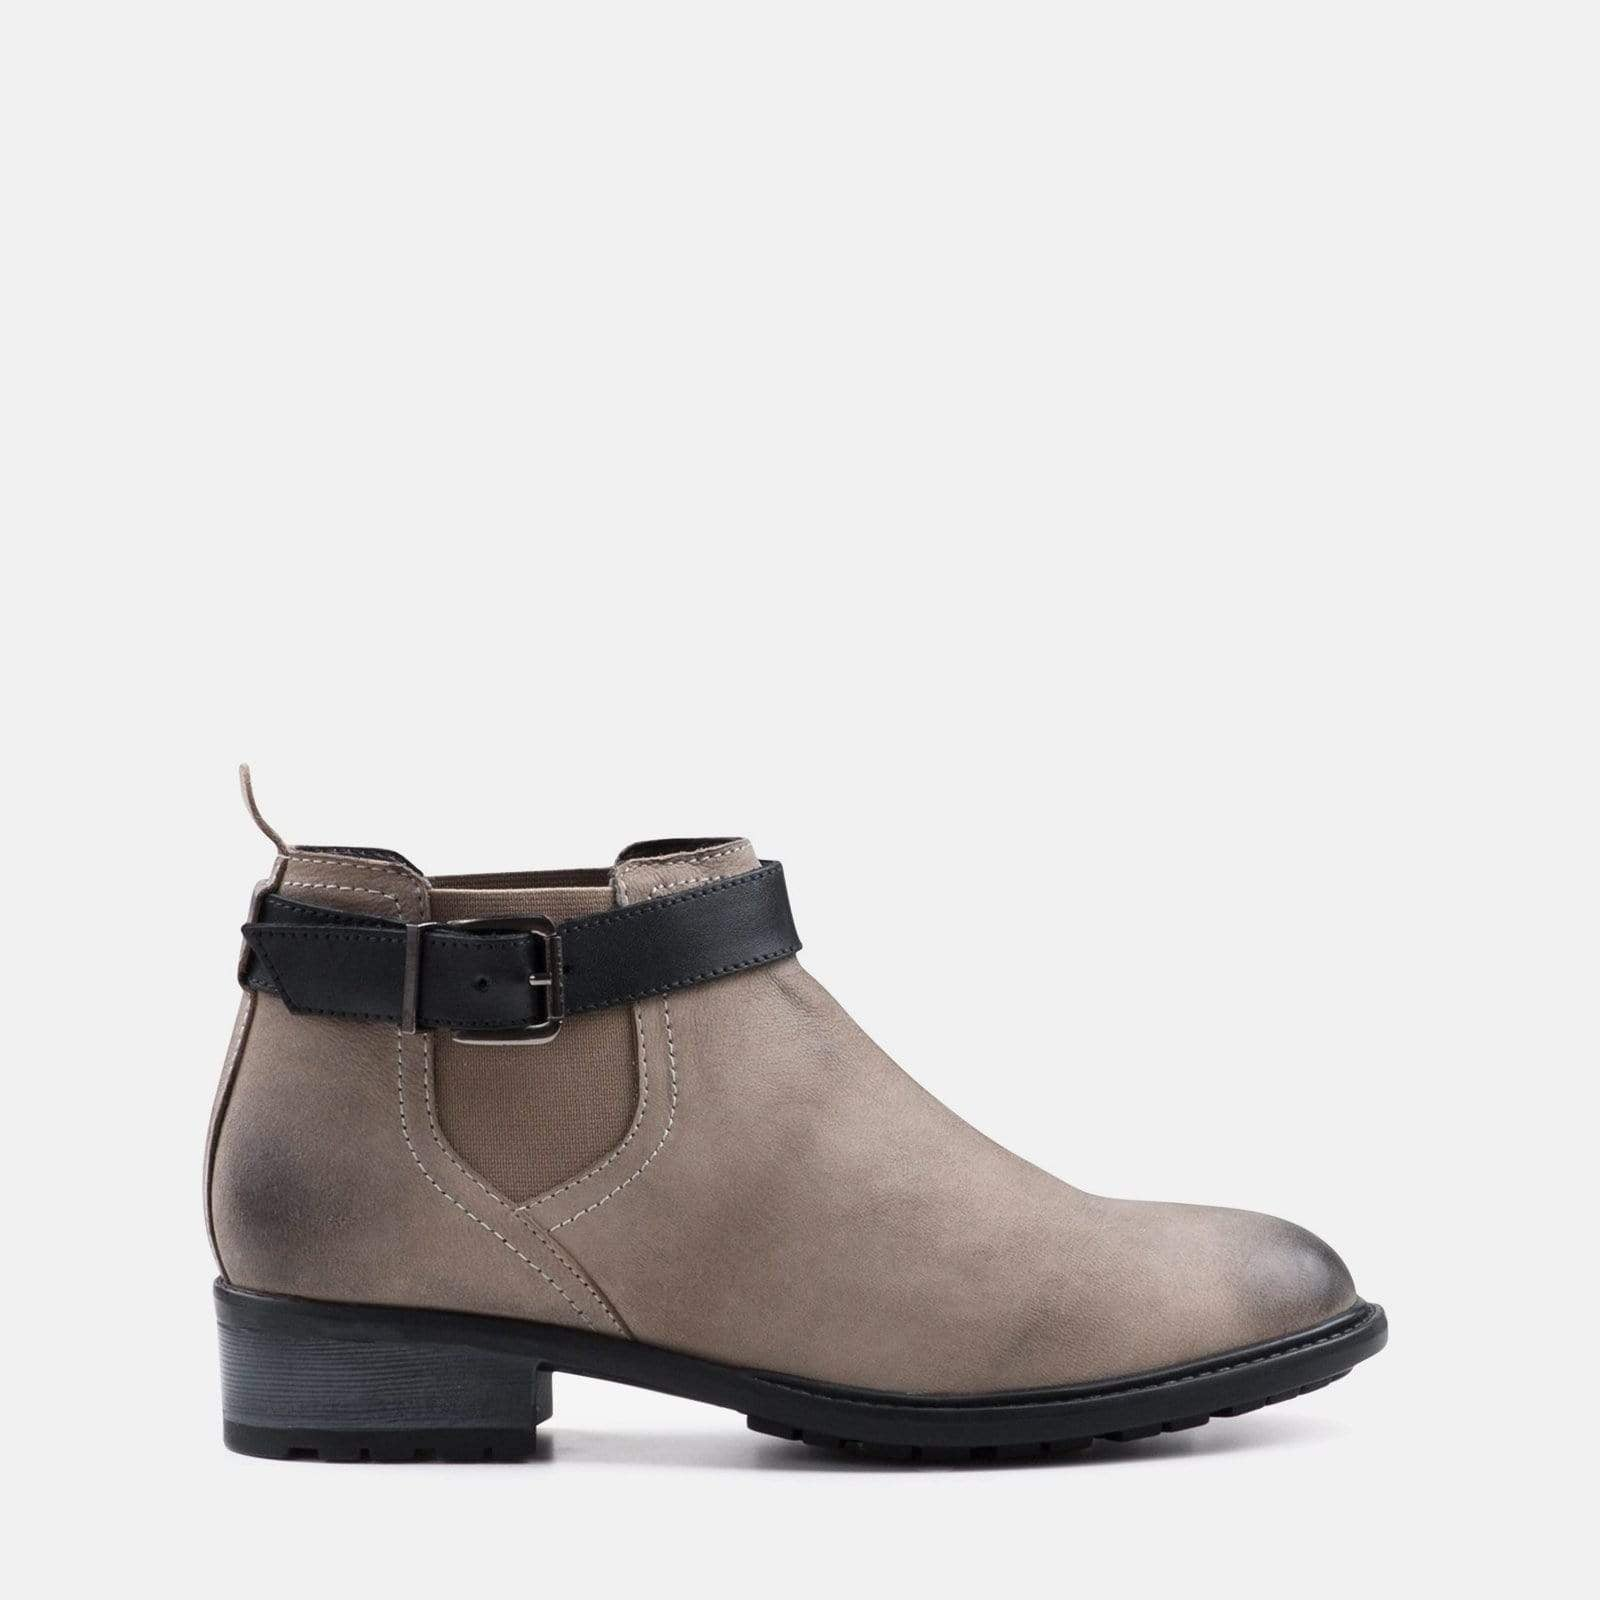 Redfoot Footwear TILLY STONE